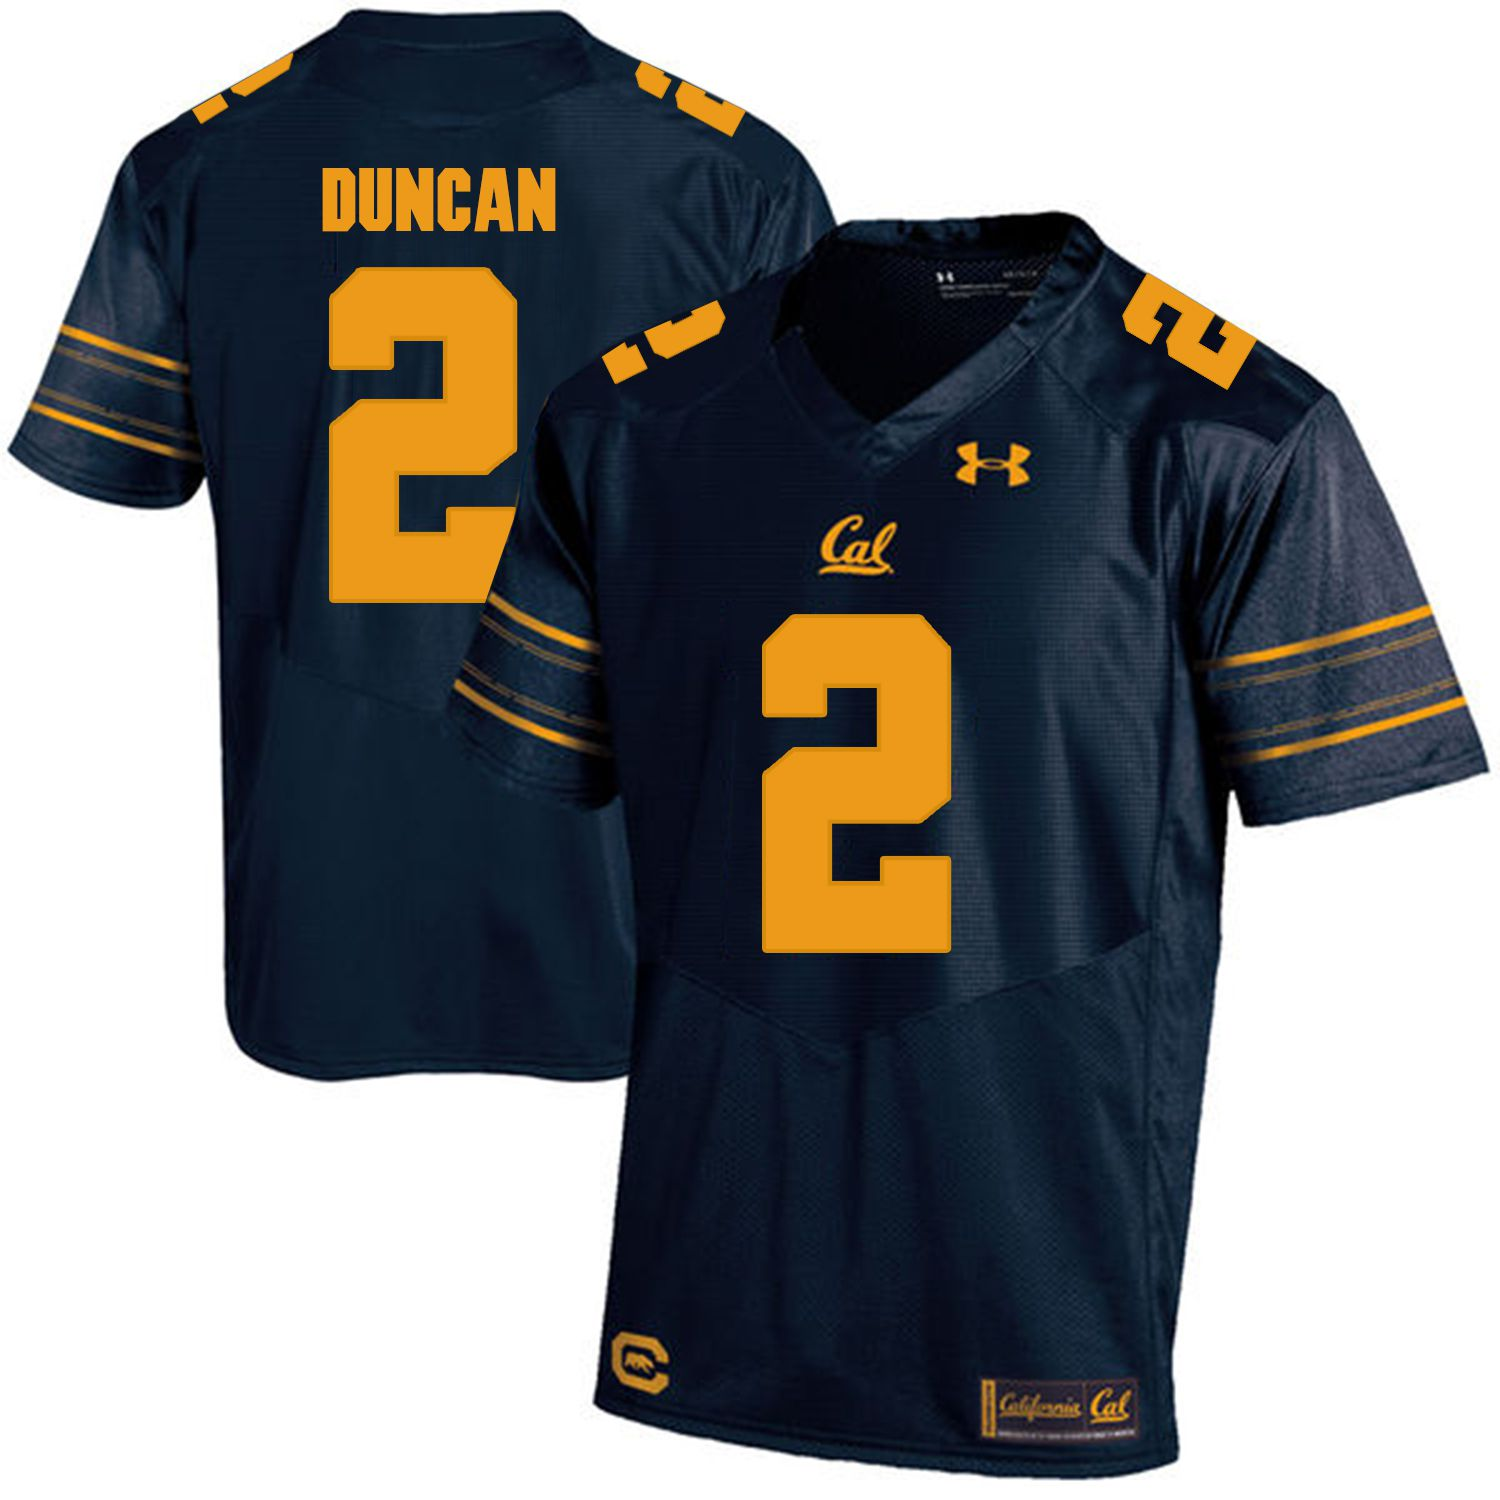 Men California Golden Bears 2 Jordan Duncan Dark blue Customized NCAA Jerseys1